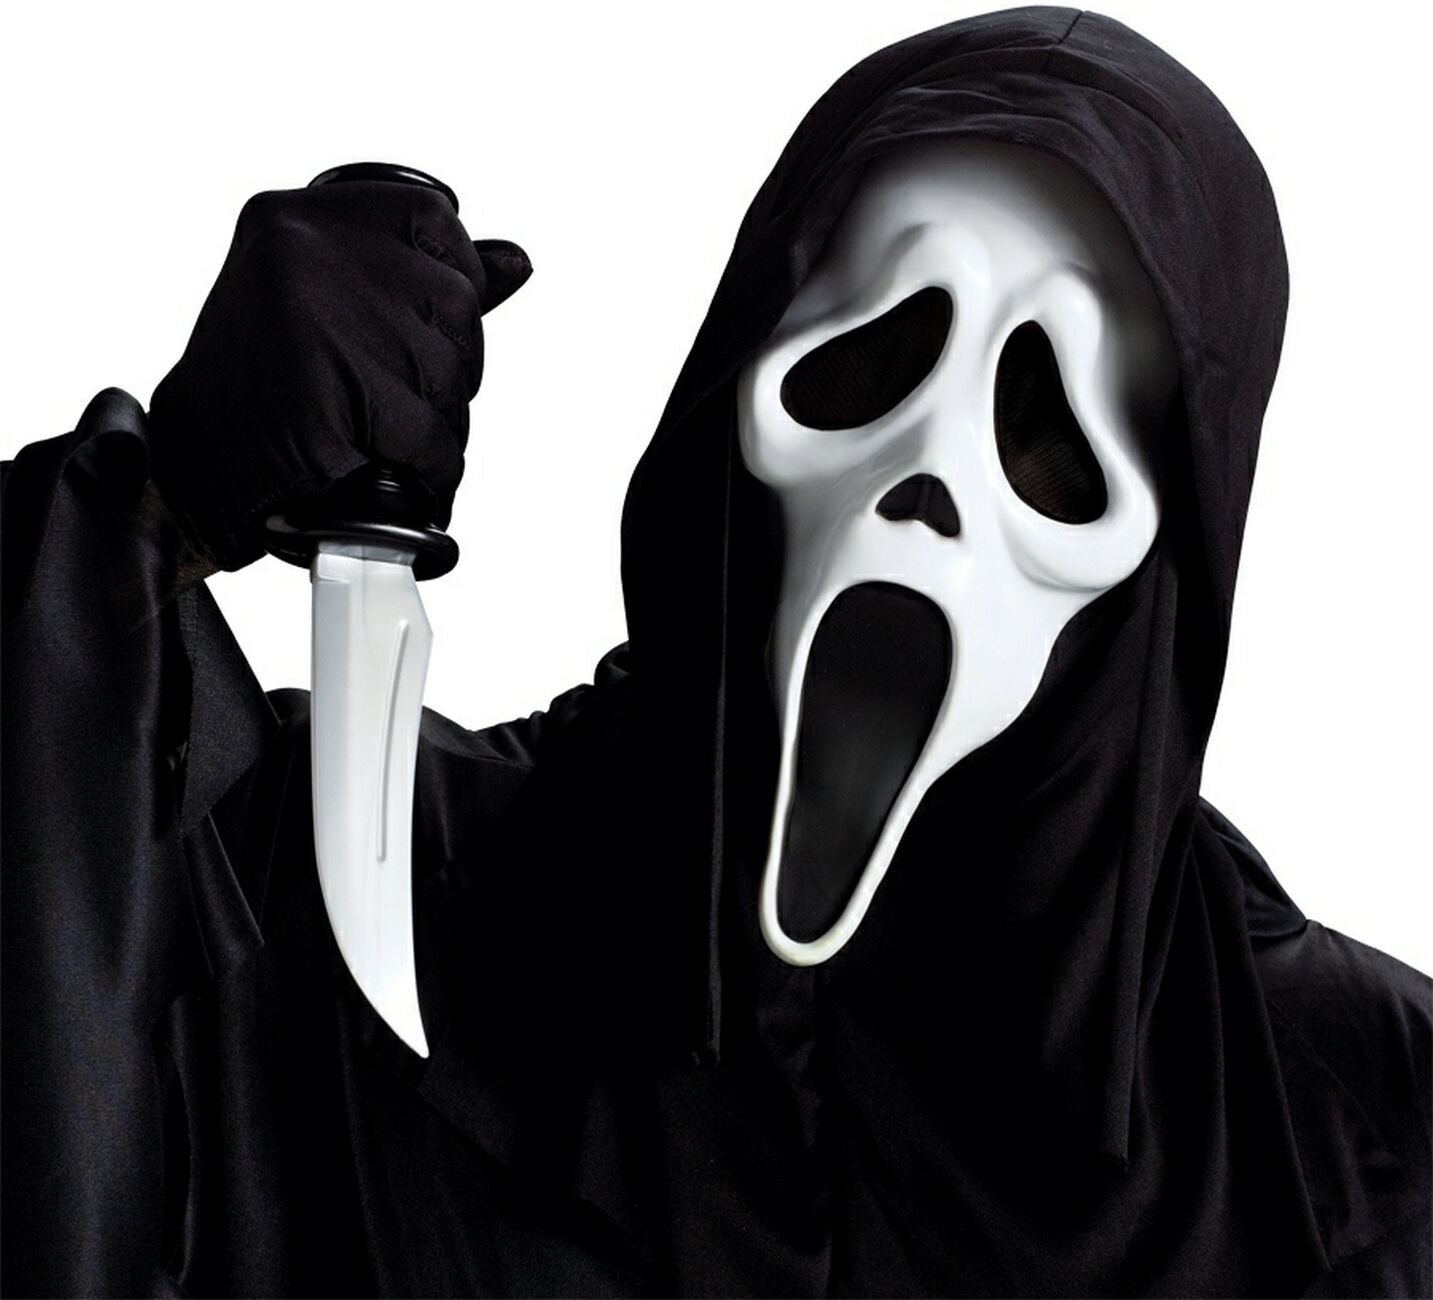 Ghostface scream villains wiki fandom powered by wikia for Scream pumpkin template